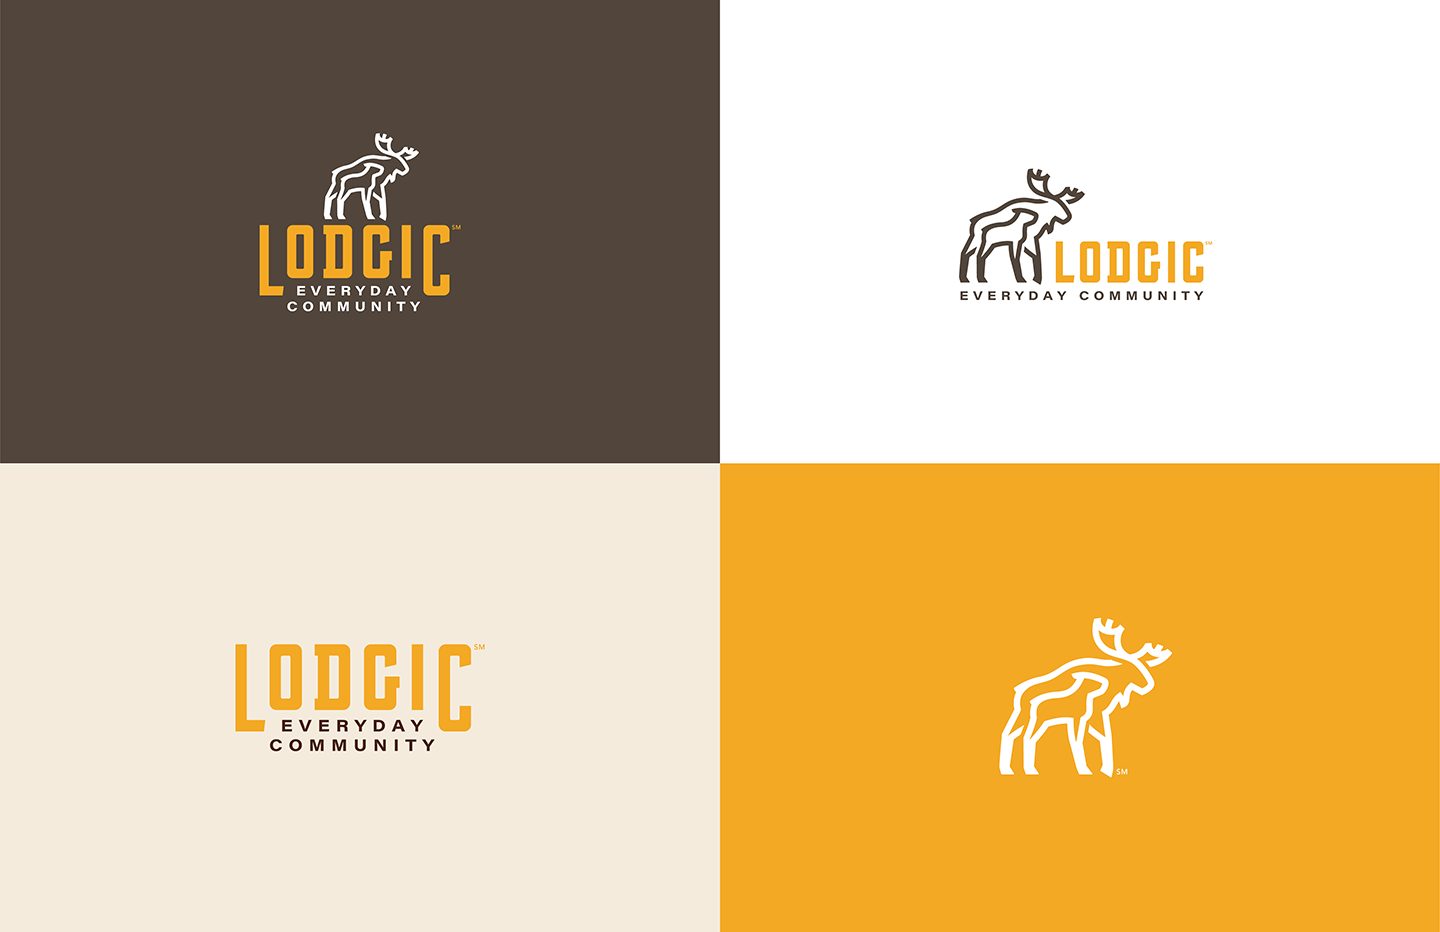 Lodgic_identity_submission-02.png